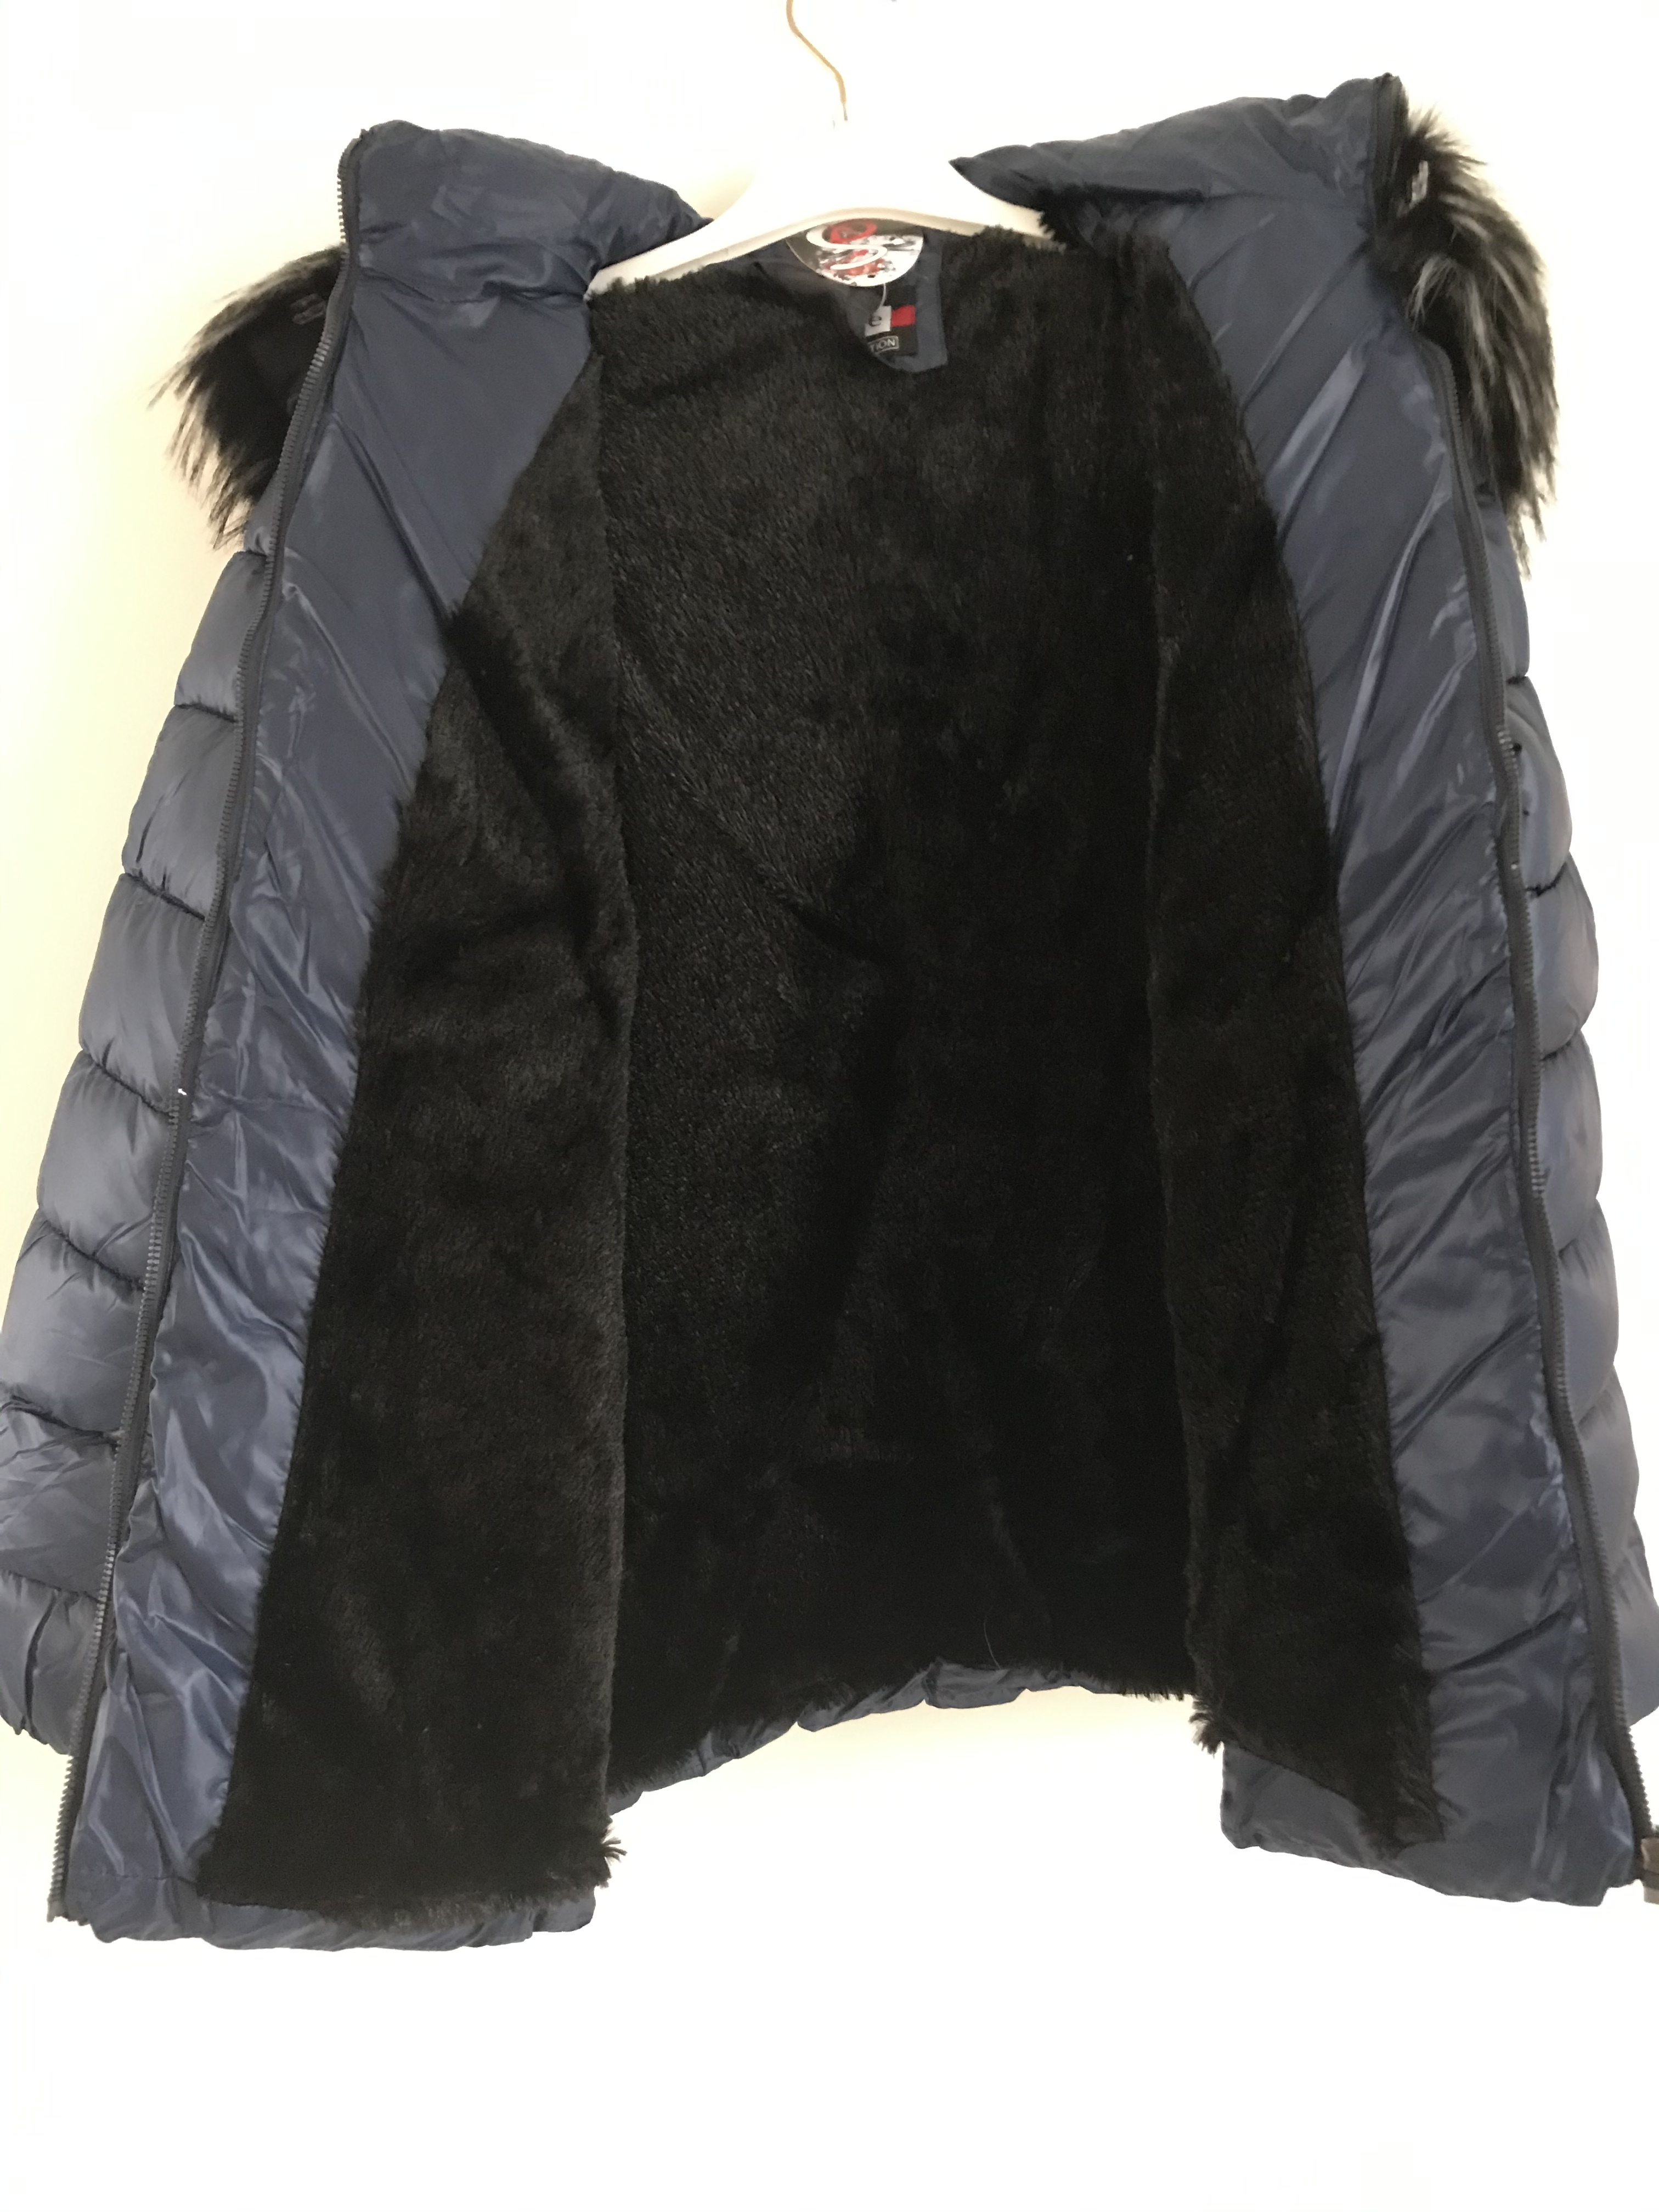 S'Quise Paris: Sleek Puffer Faux Fur Inside Coat With Removable Hood (More Colors!)